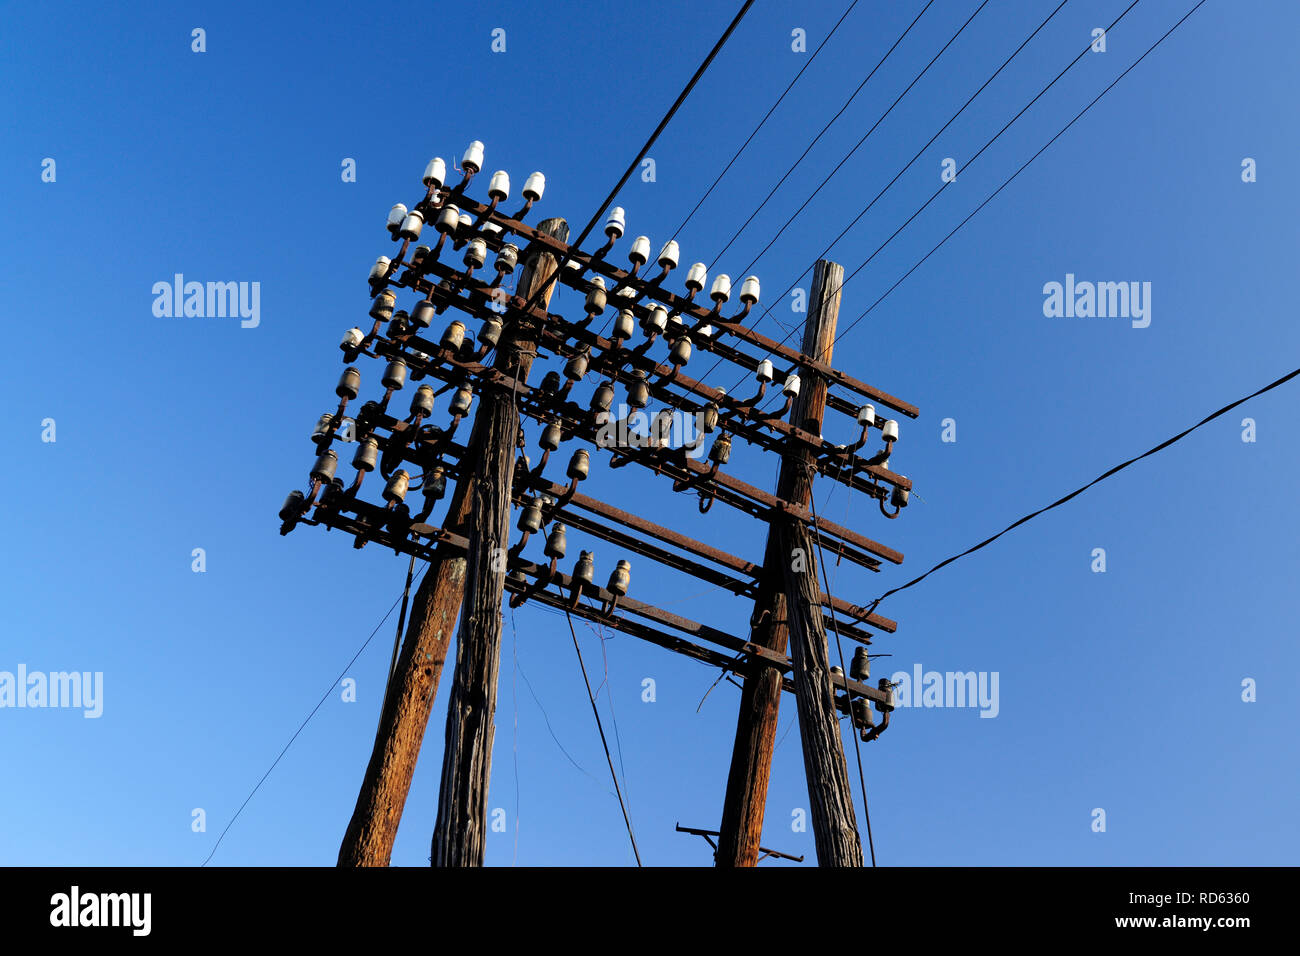 sloop, energy, transmission, conventional, old, porcelain, connection, voltage, electricity, high, low, wood, wooden, danger, cables, transformer stat - Stock Image